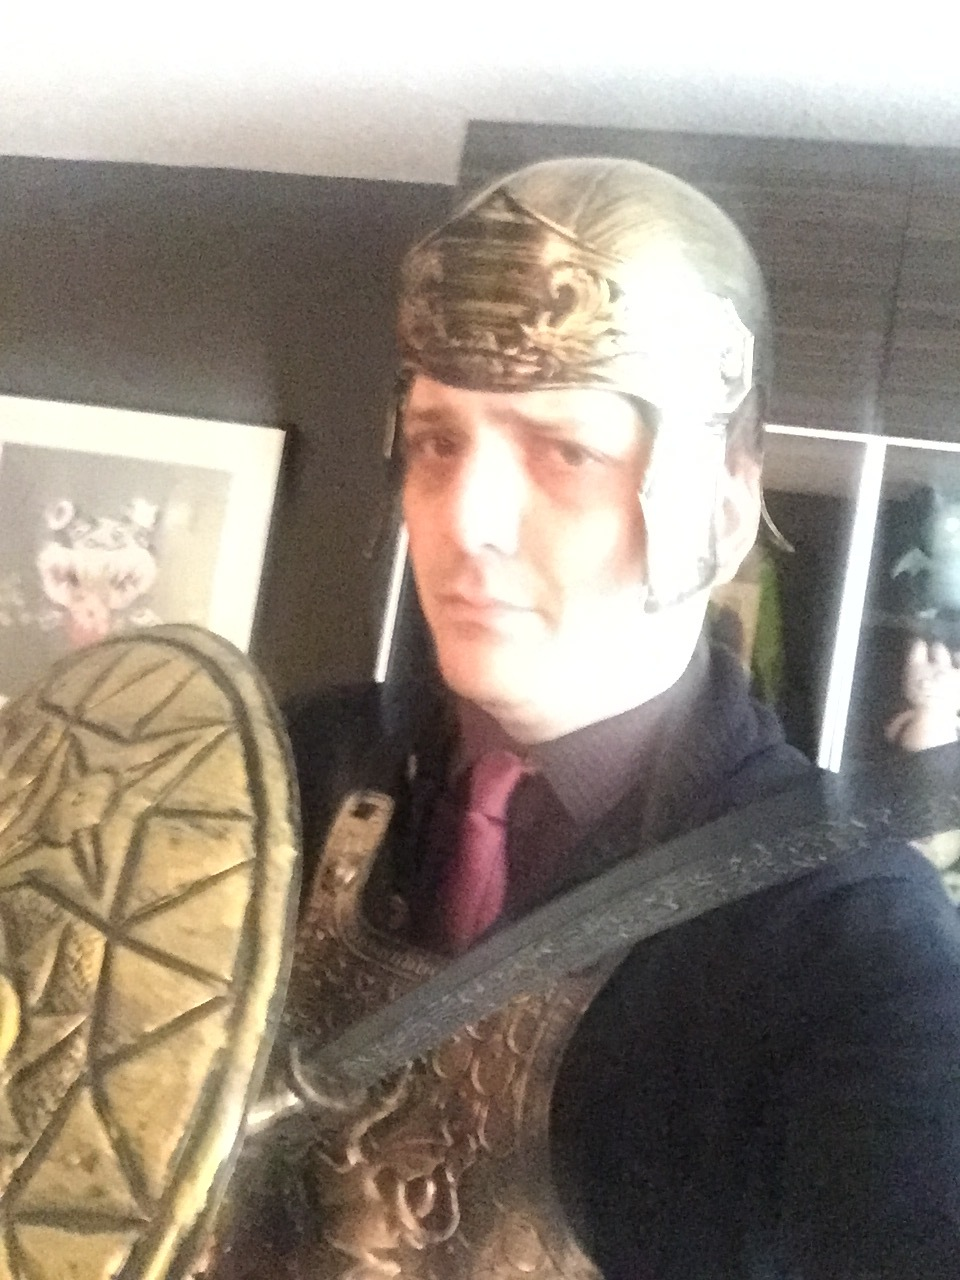 The helmet almost fit. Almost.